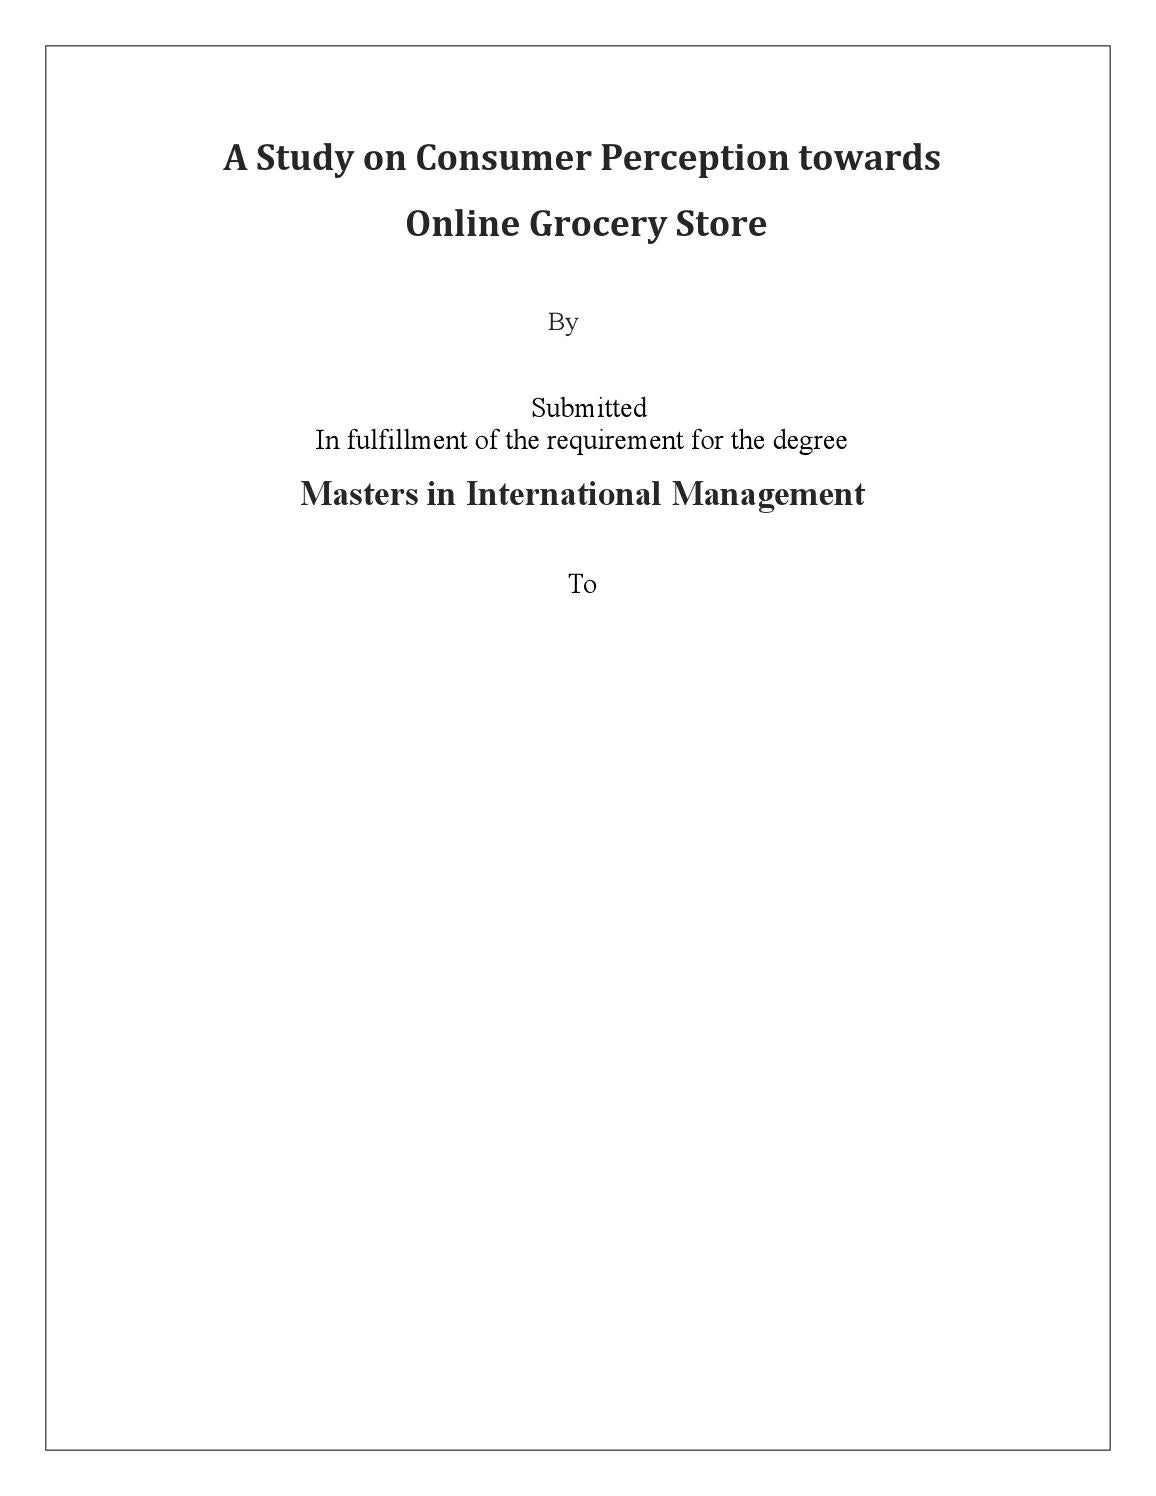 research papers on consumer behaviour towards online shopping research papers on consumer behaviour towards online shopping